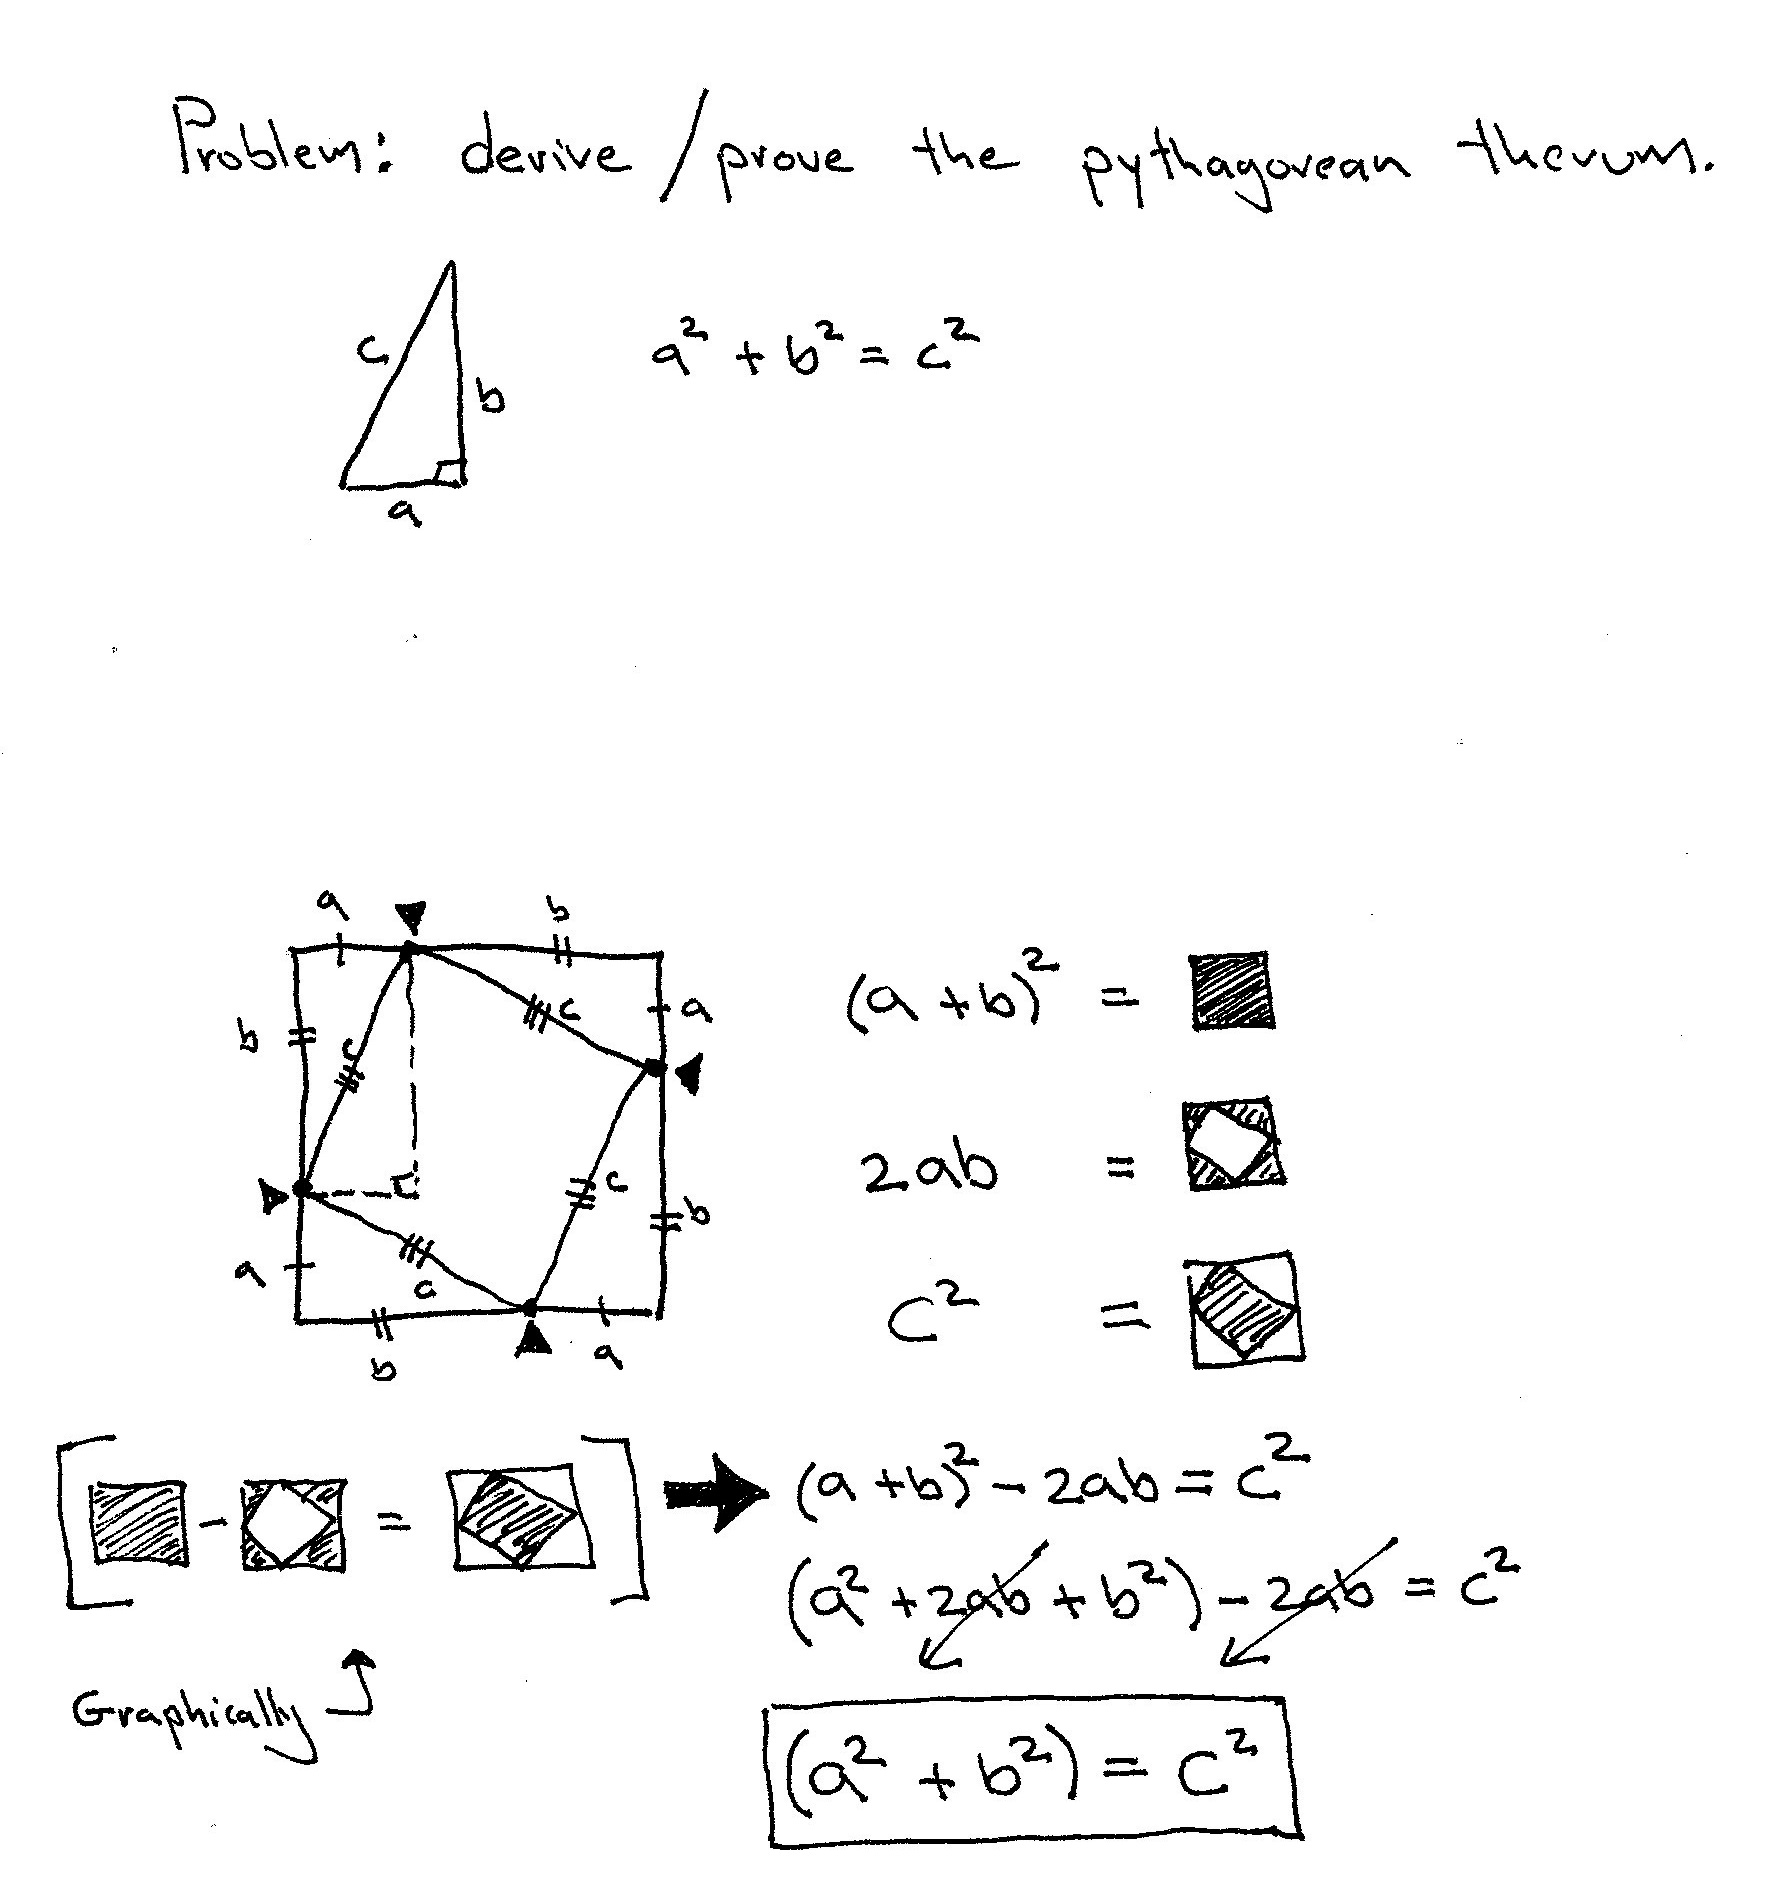 Graphical proof for the pythagorean theorem